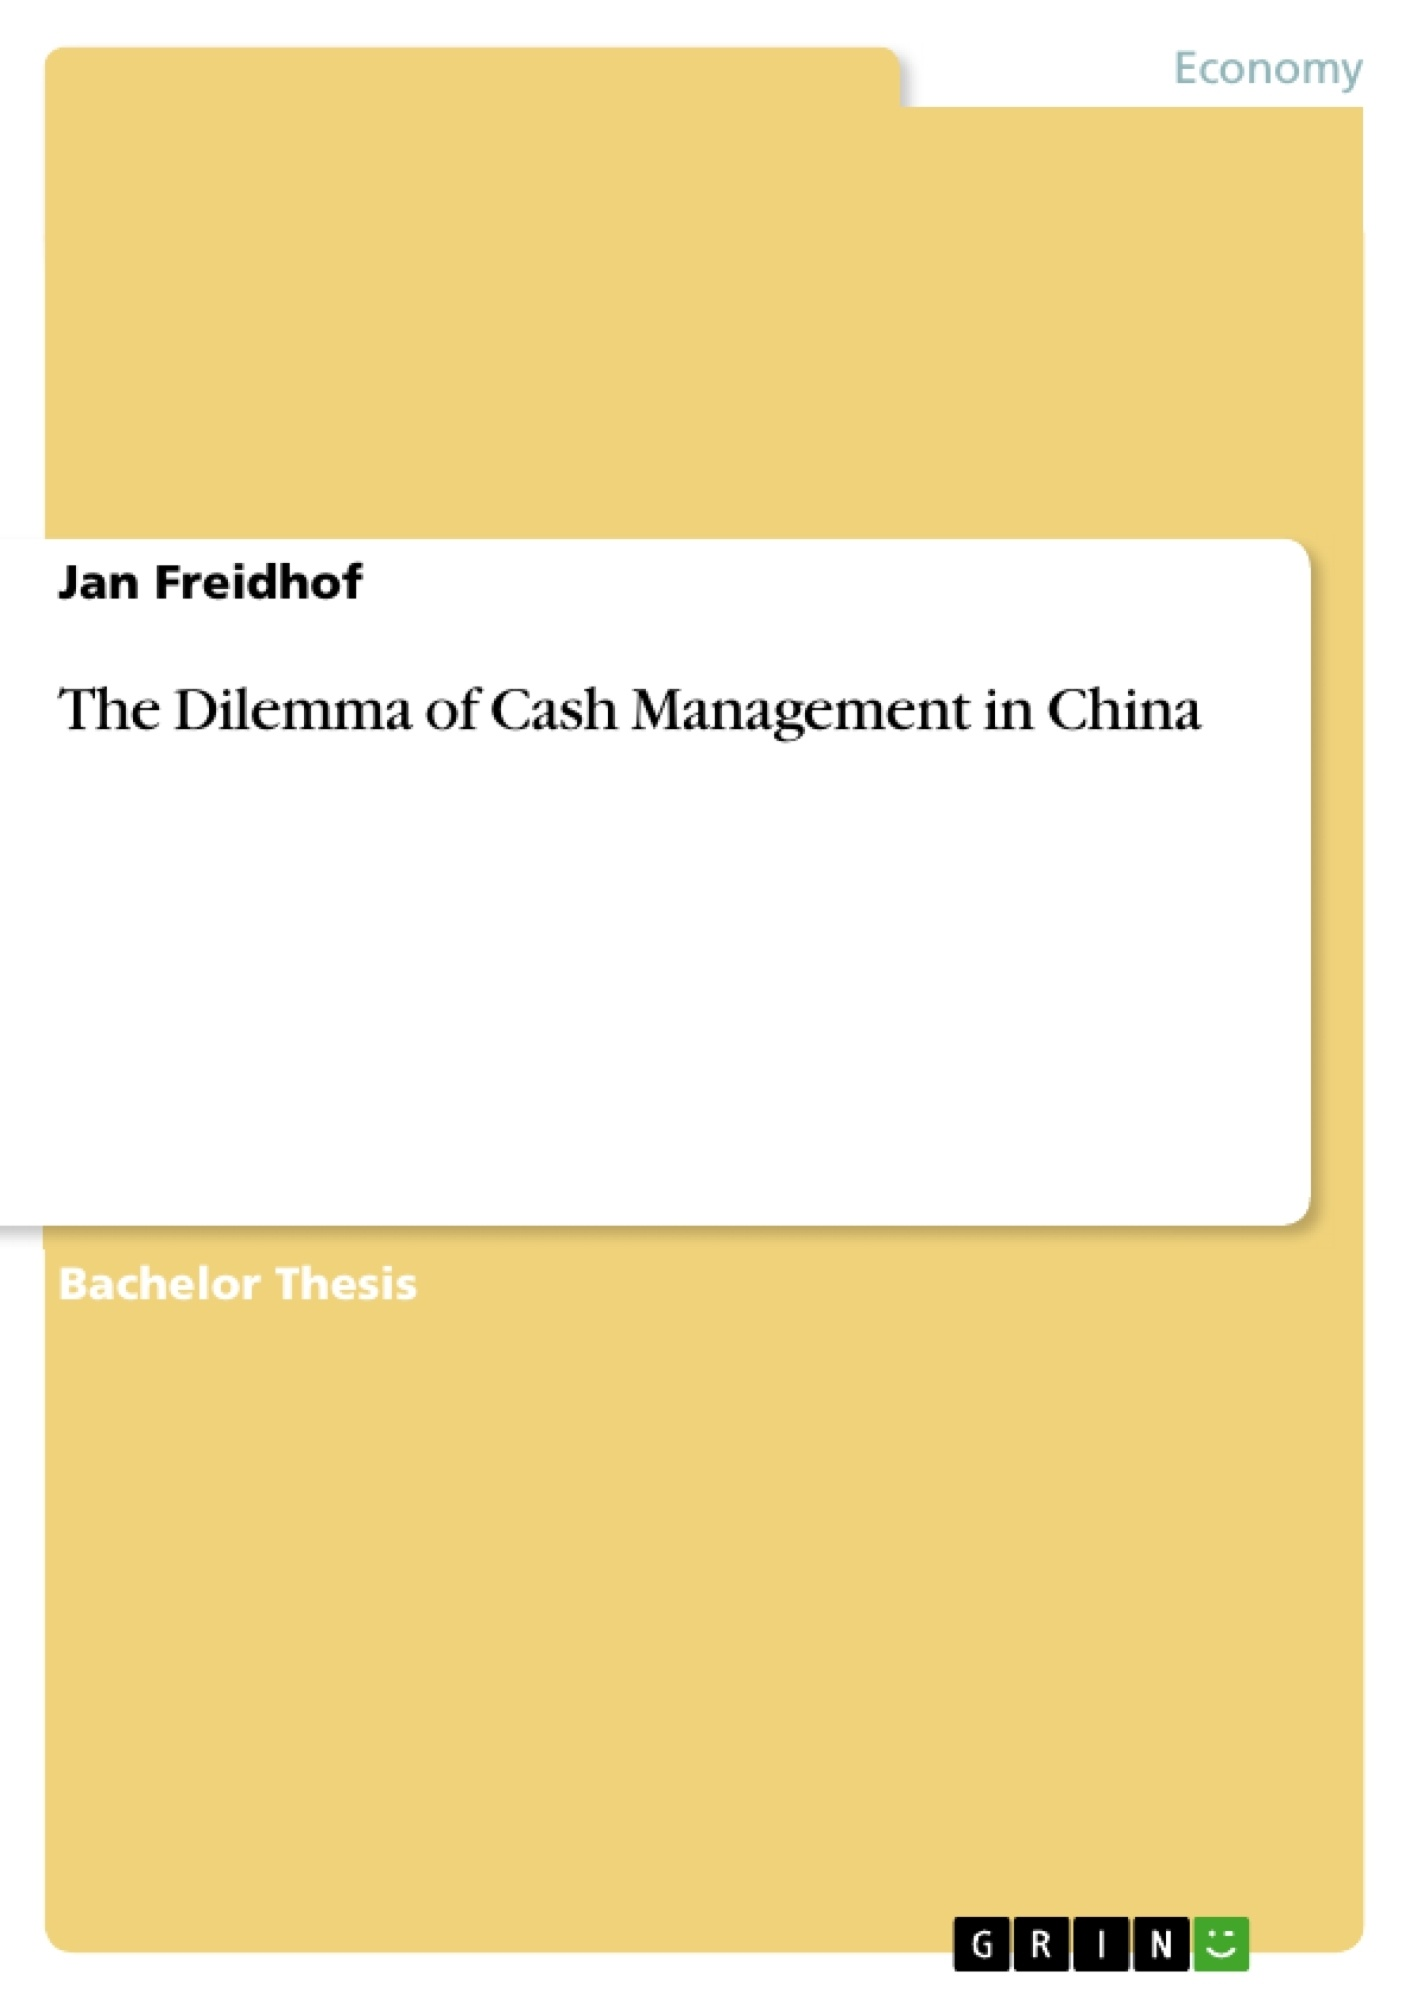 Cash Pool Unternehmen Grin The Dilemma Of Cash Management In China